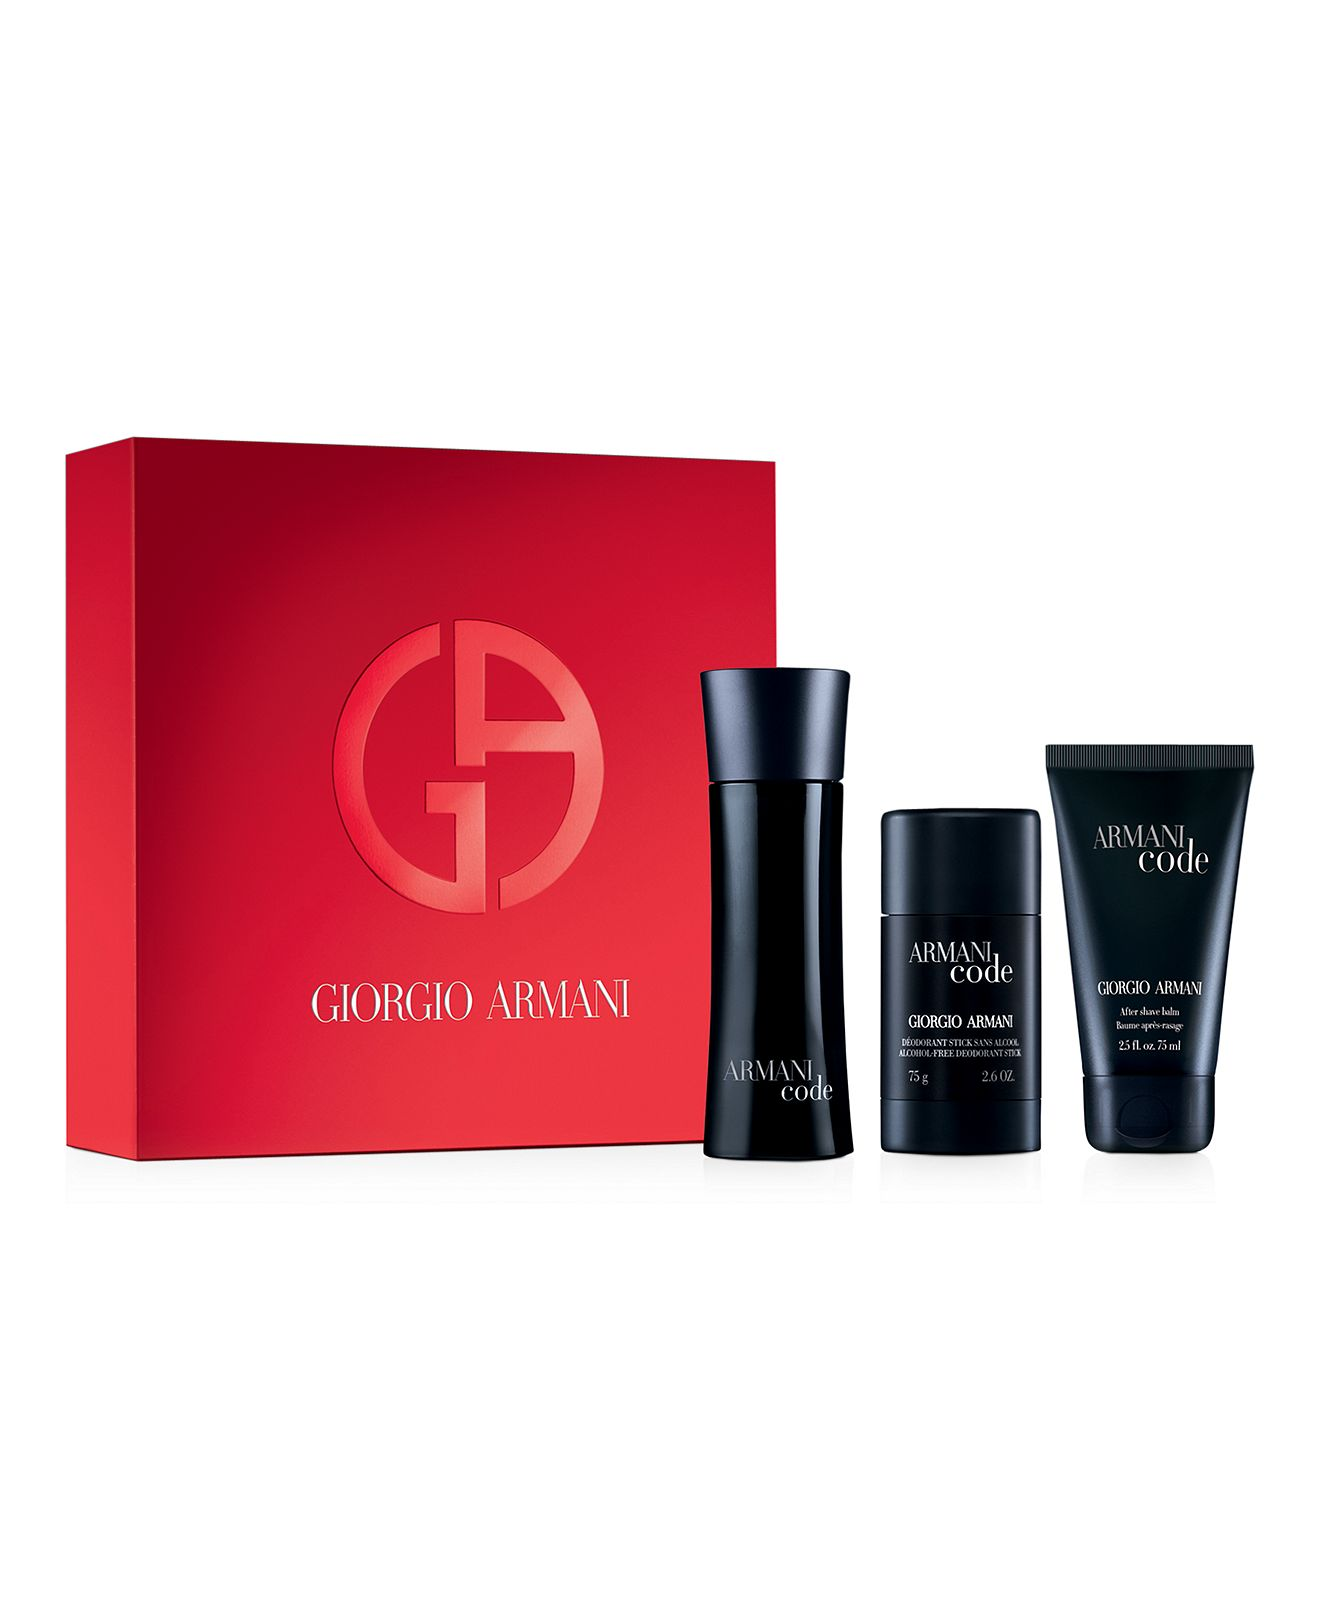 Armani Code by Giorgio Armani 3 Pc Gift Set for men